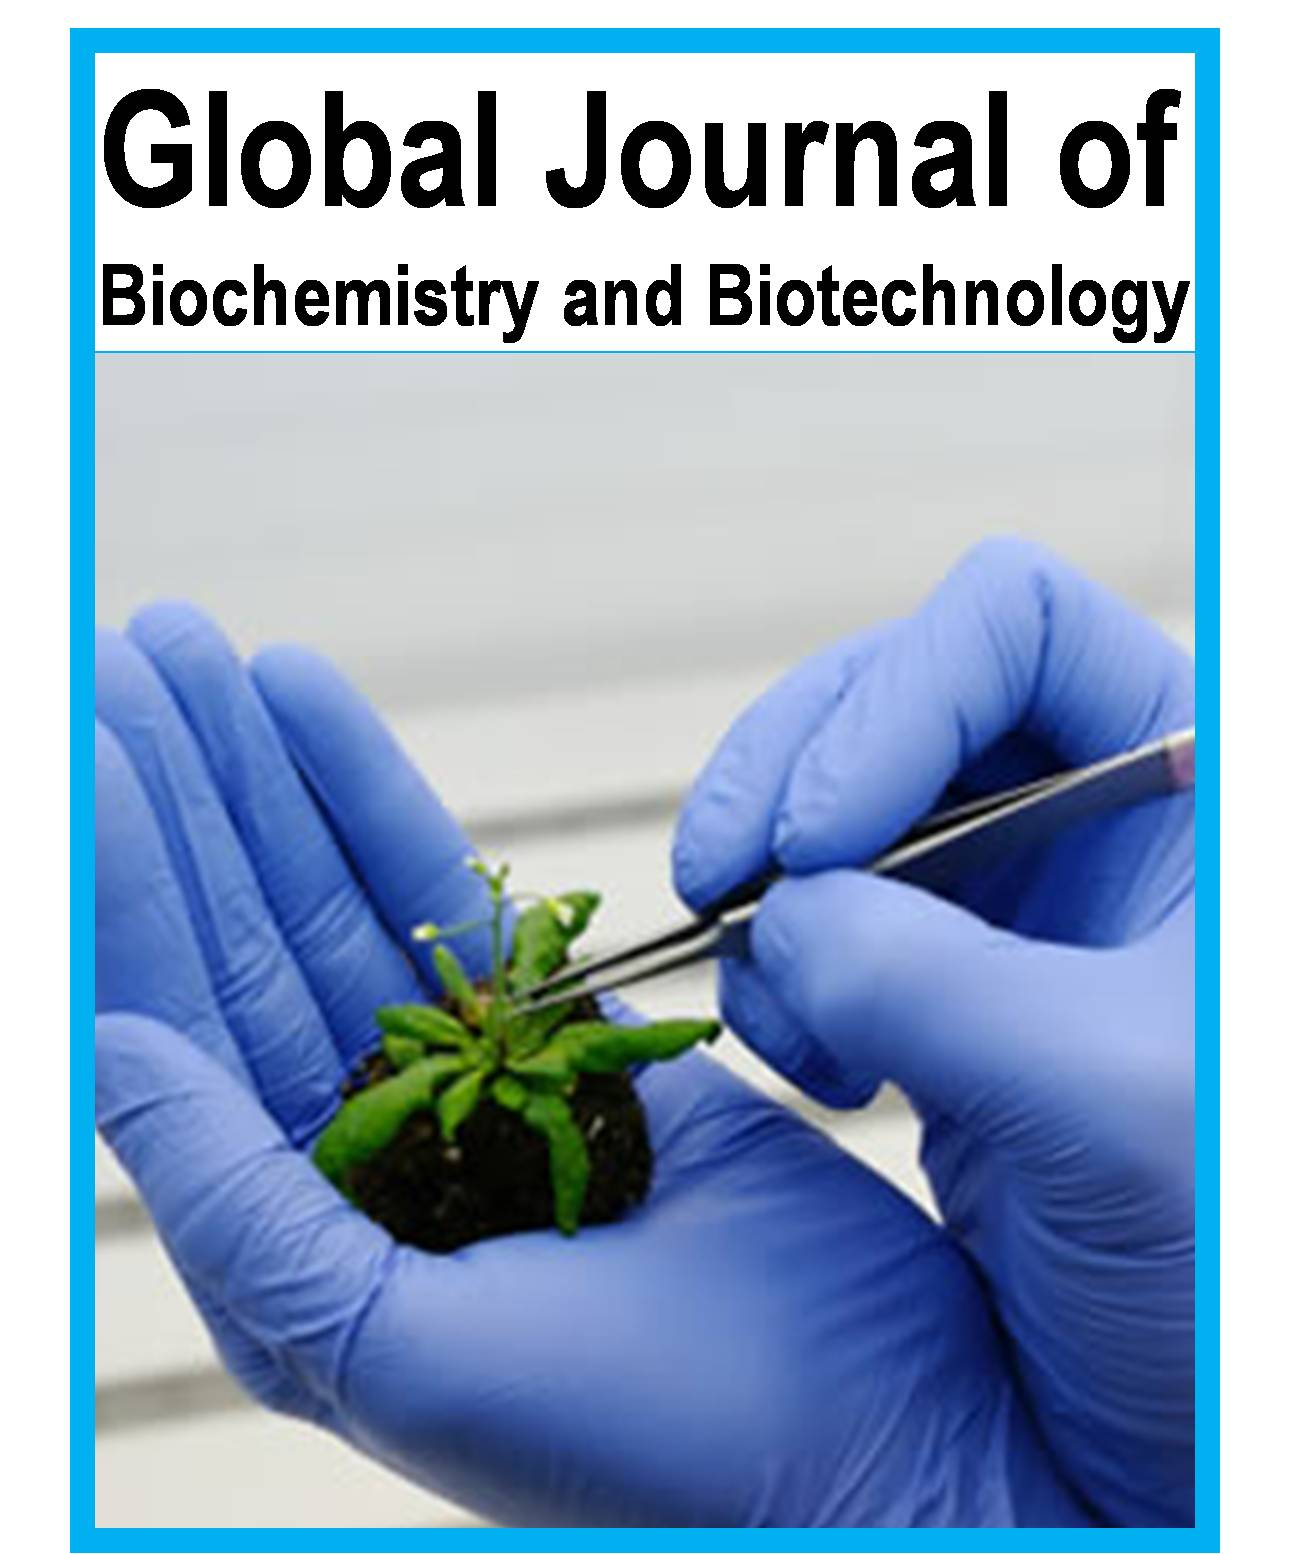 global journal of biochemistry and biotechnology citefactor org is a peer reviewed open access journal that provides rapid publication monthly of articles in all areas of biochemistry and biotechnology and related